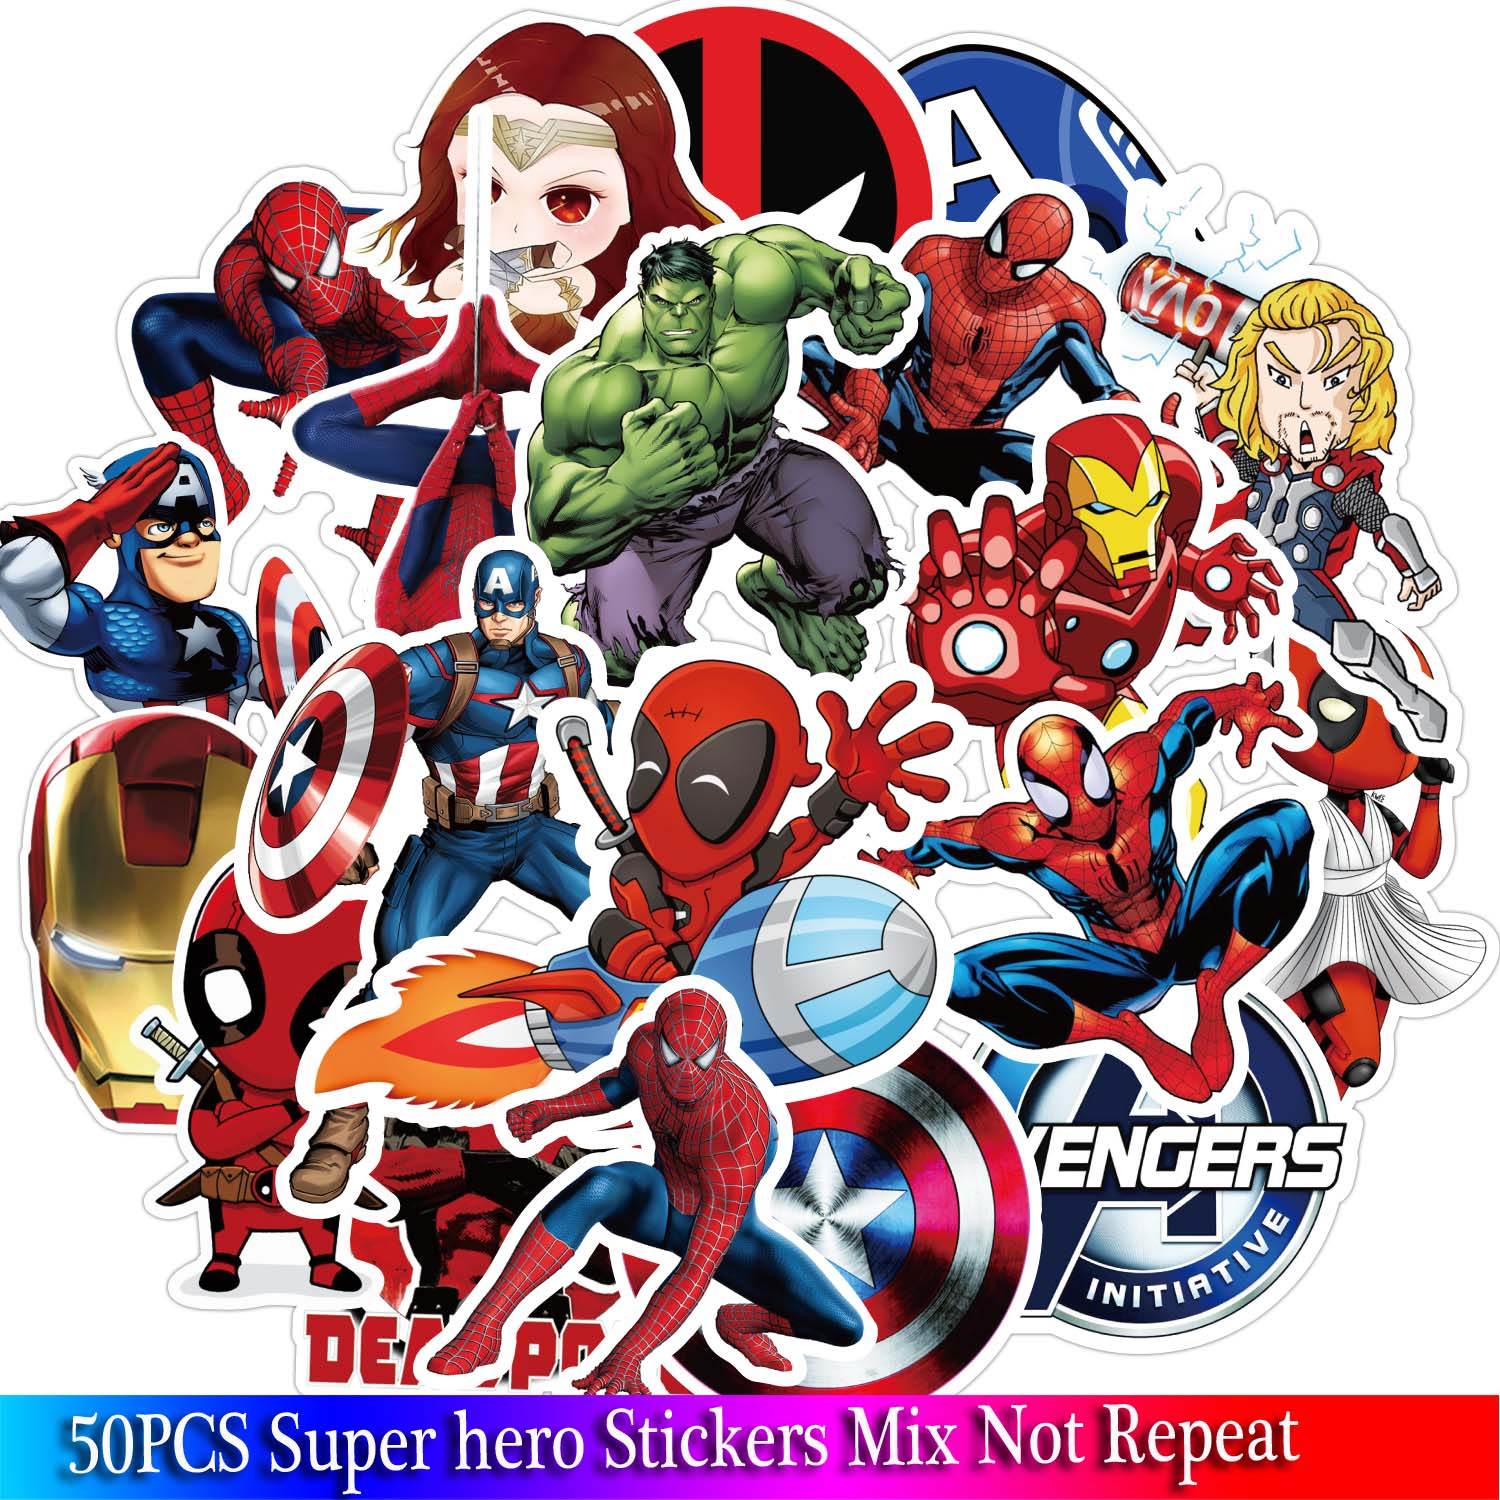 50PCS Super Hero Stickers Movies Character Marvel Sticker For DIY Skateboard Motorcycle Luggage Laptop Cartoon Sticker Sets image